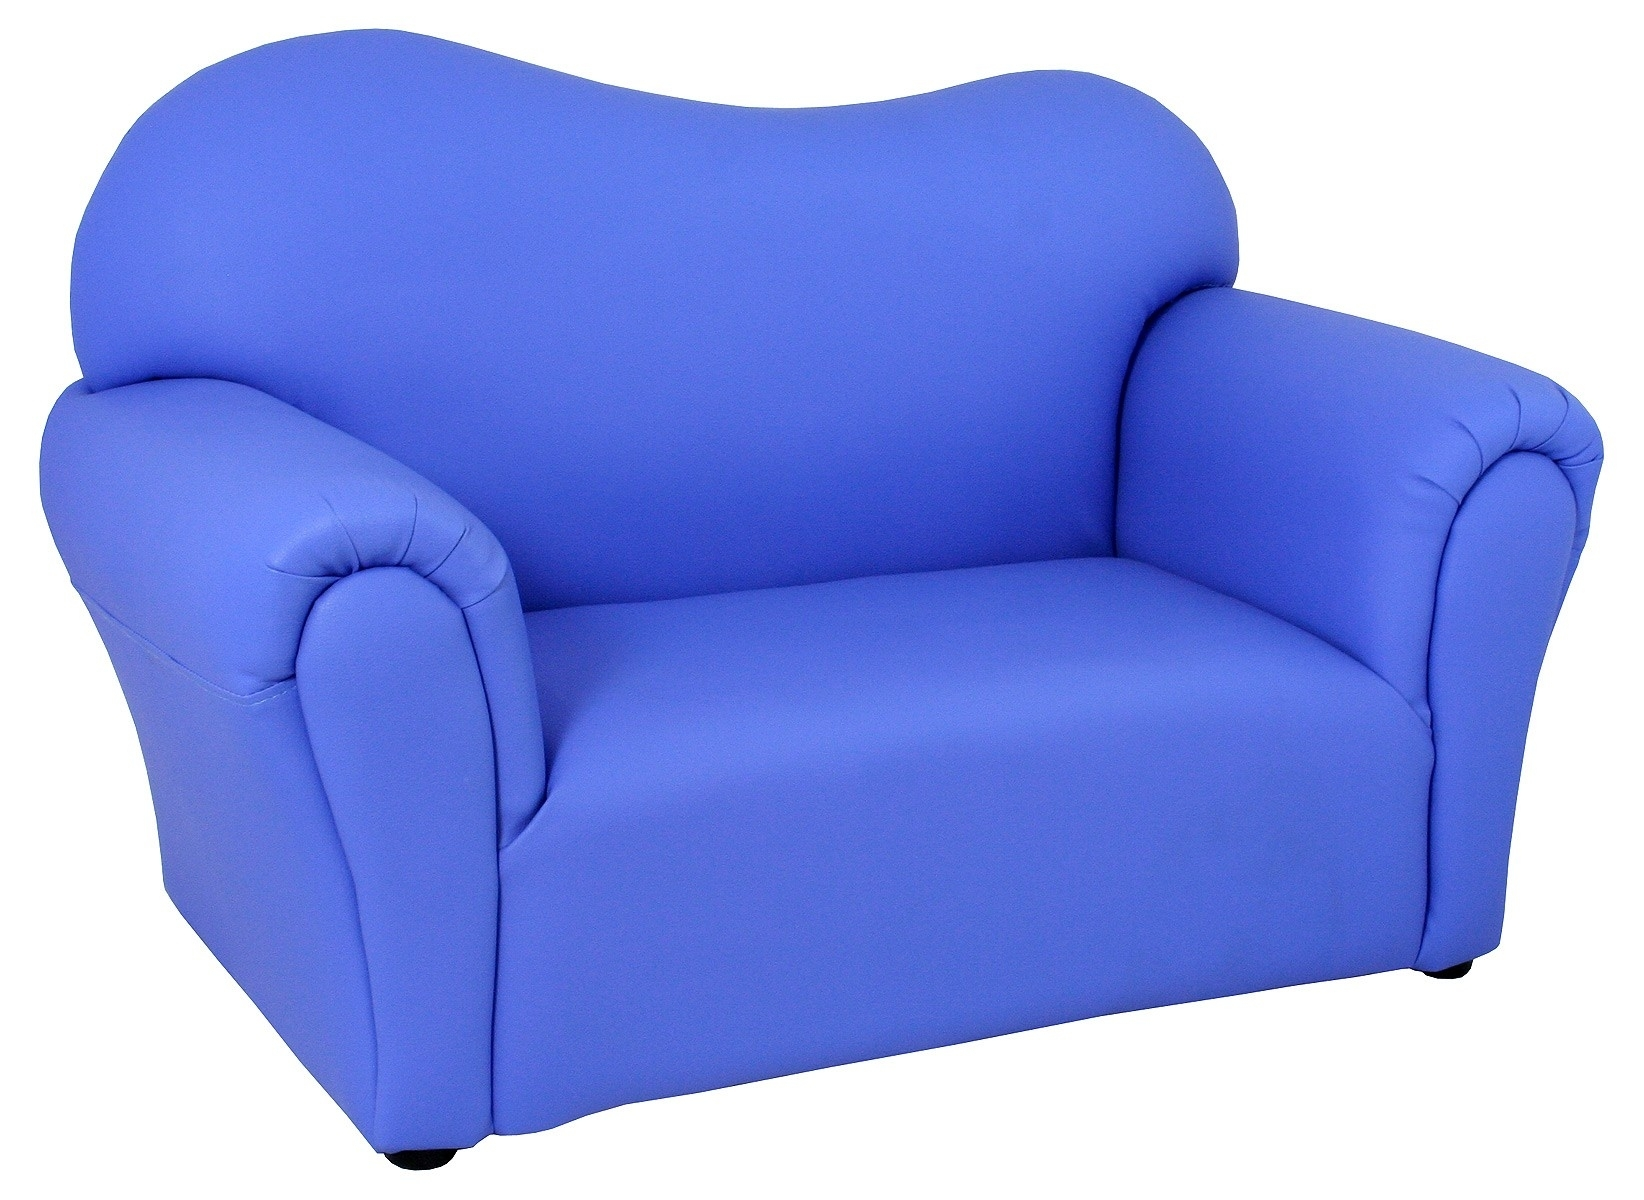 Childrens Blue Mini Sofa - Be Fabulous! throughout Childrens Sofas (Image 2 of 10)